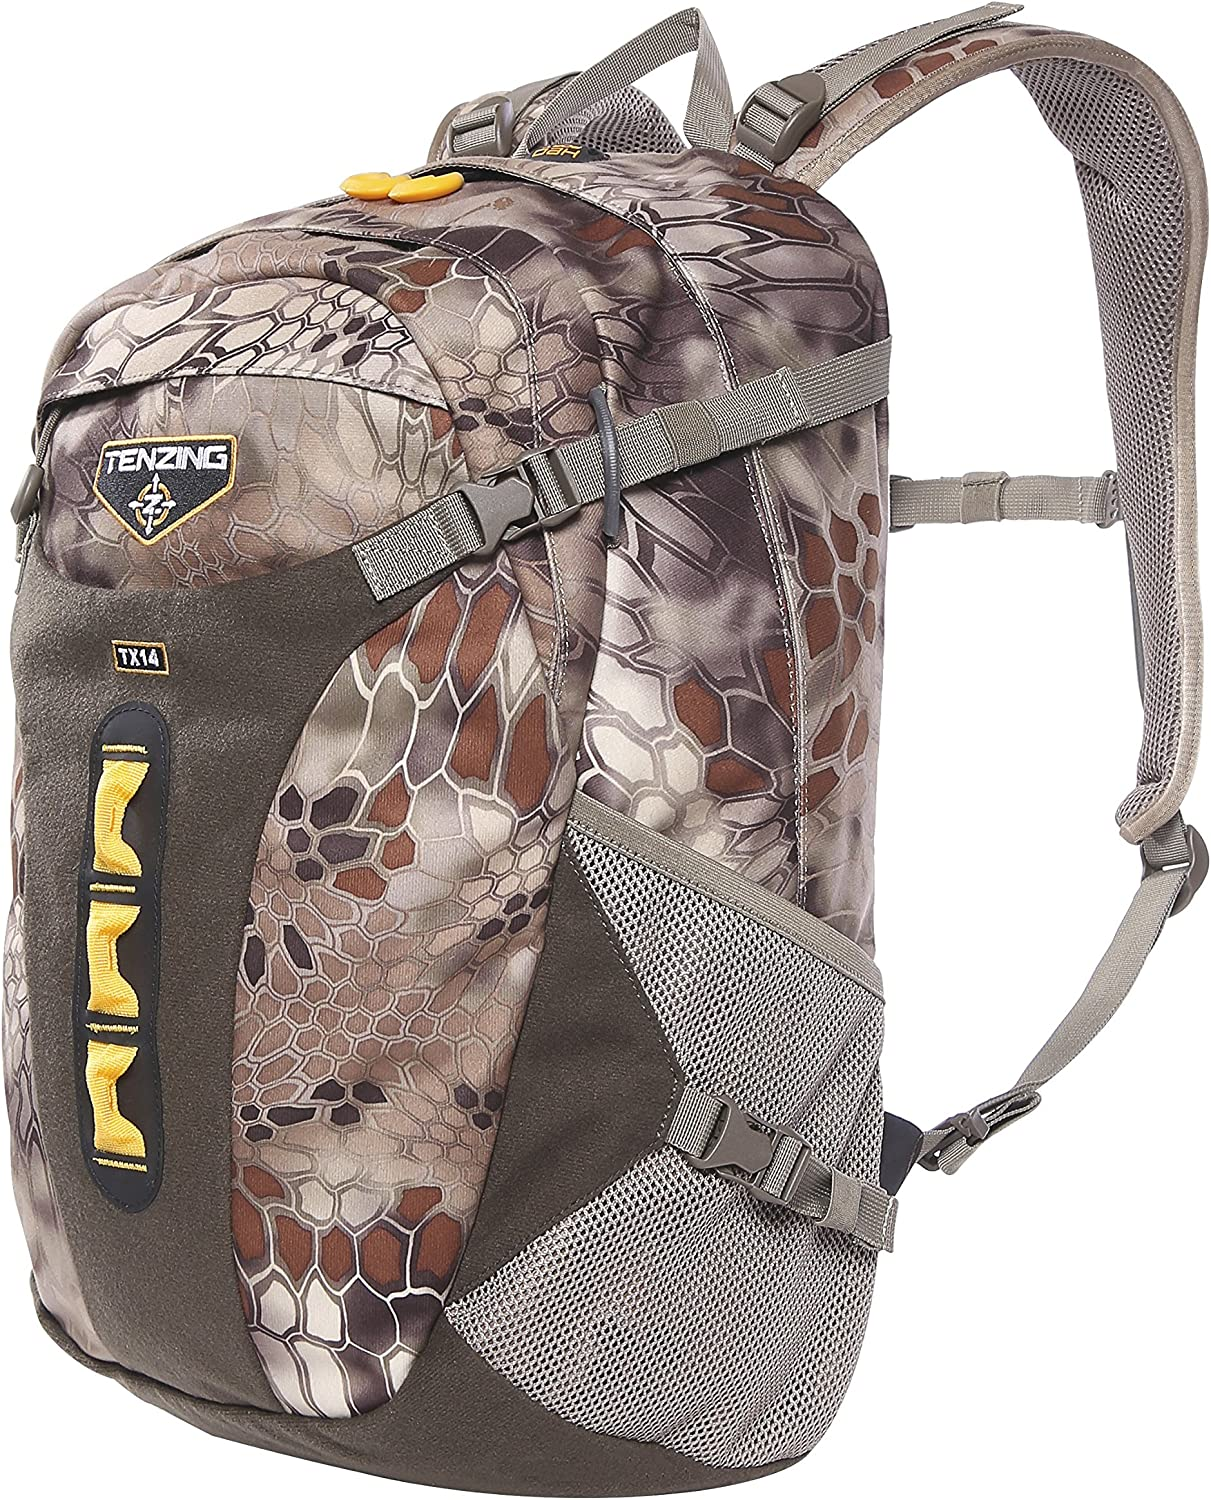 Tenzing TX 14 Day Pack, Kryptek Highlander